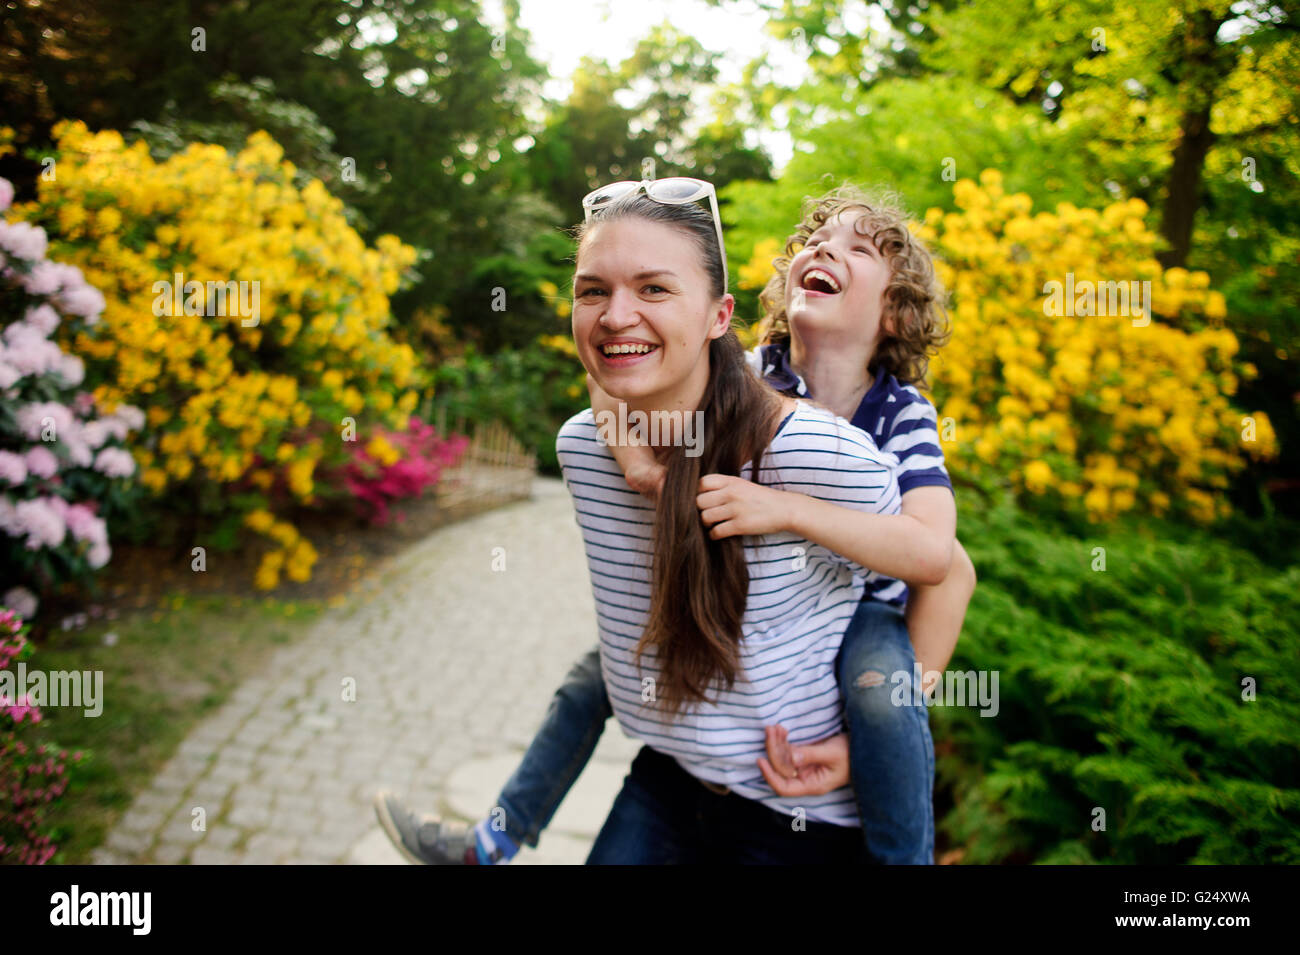 Girl playing with his younger brother in the garden - Stock Image